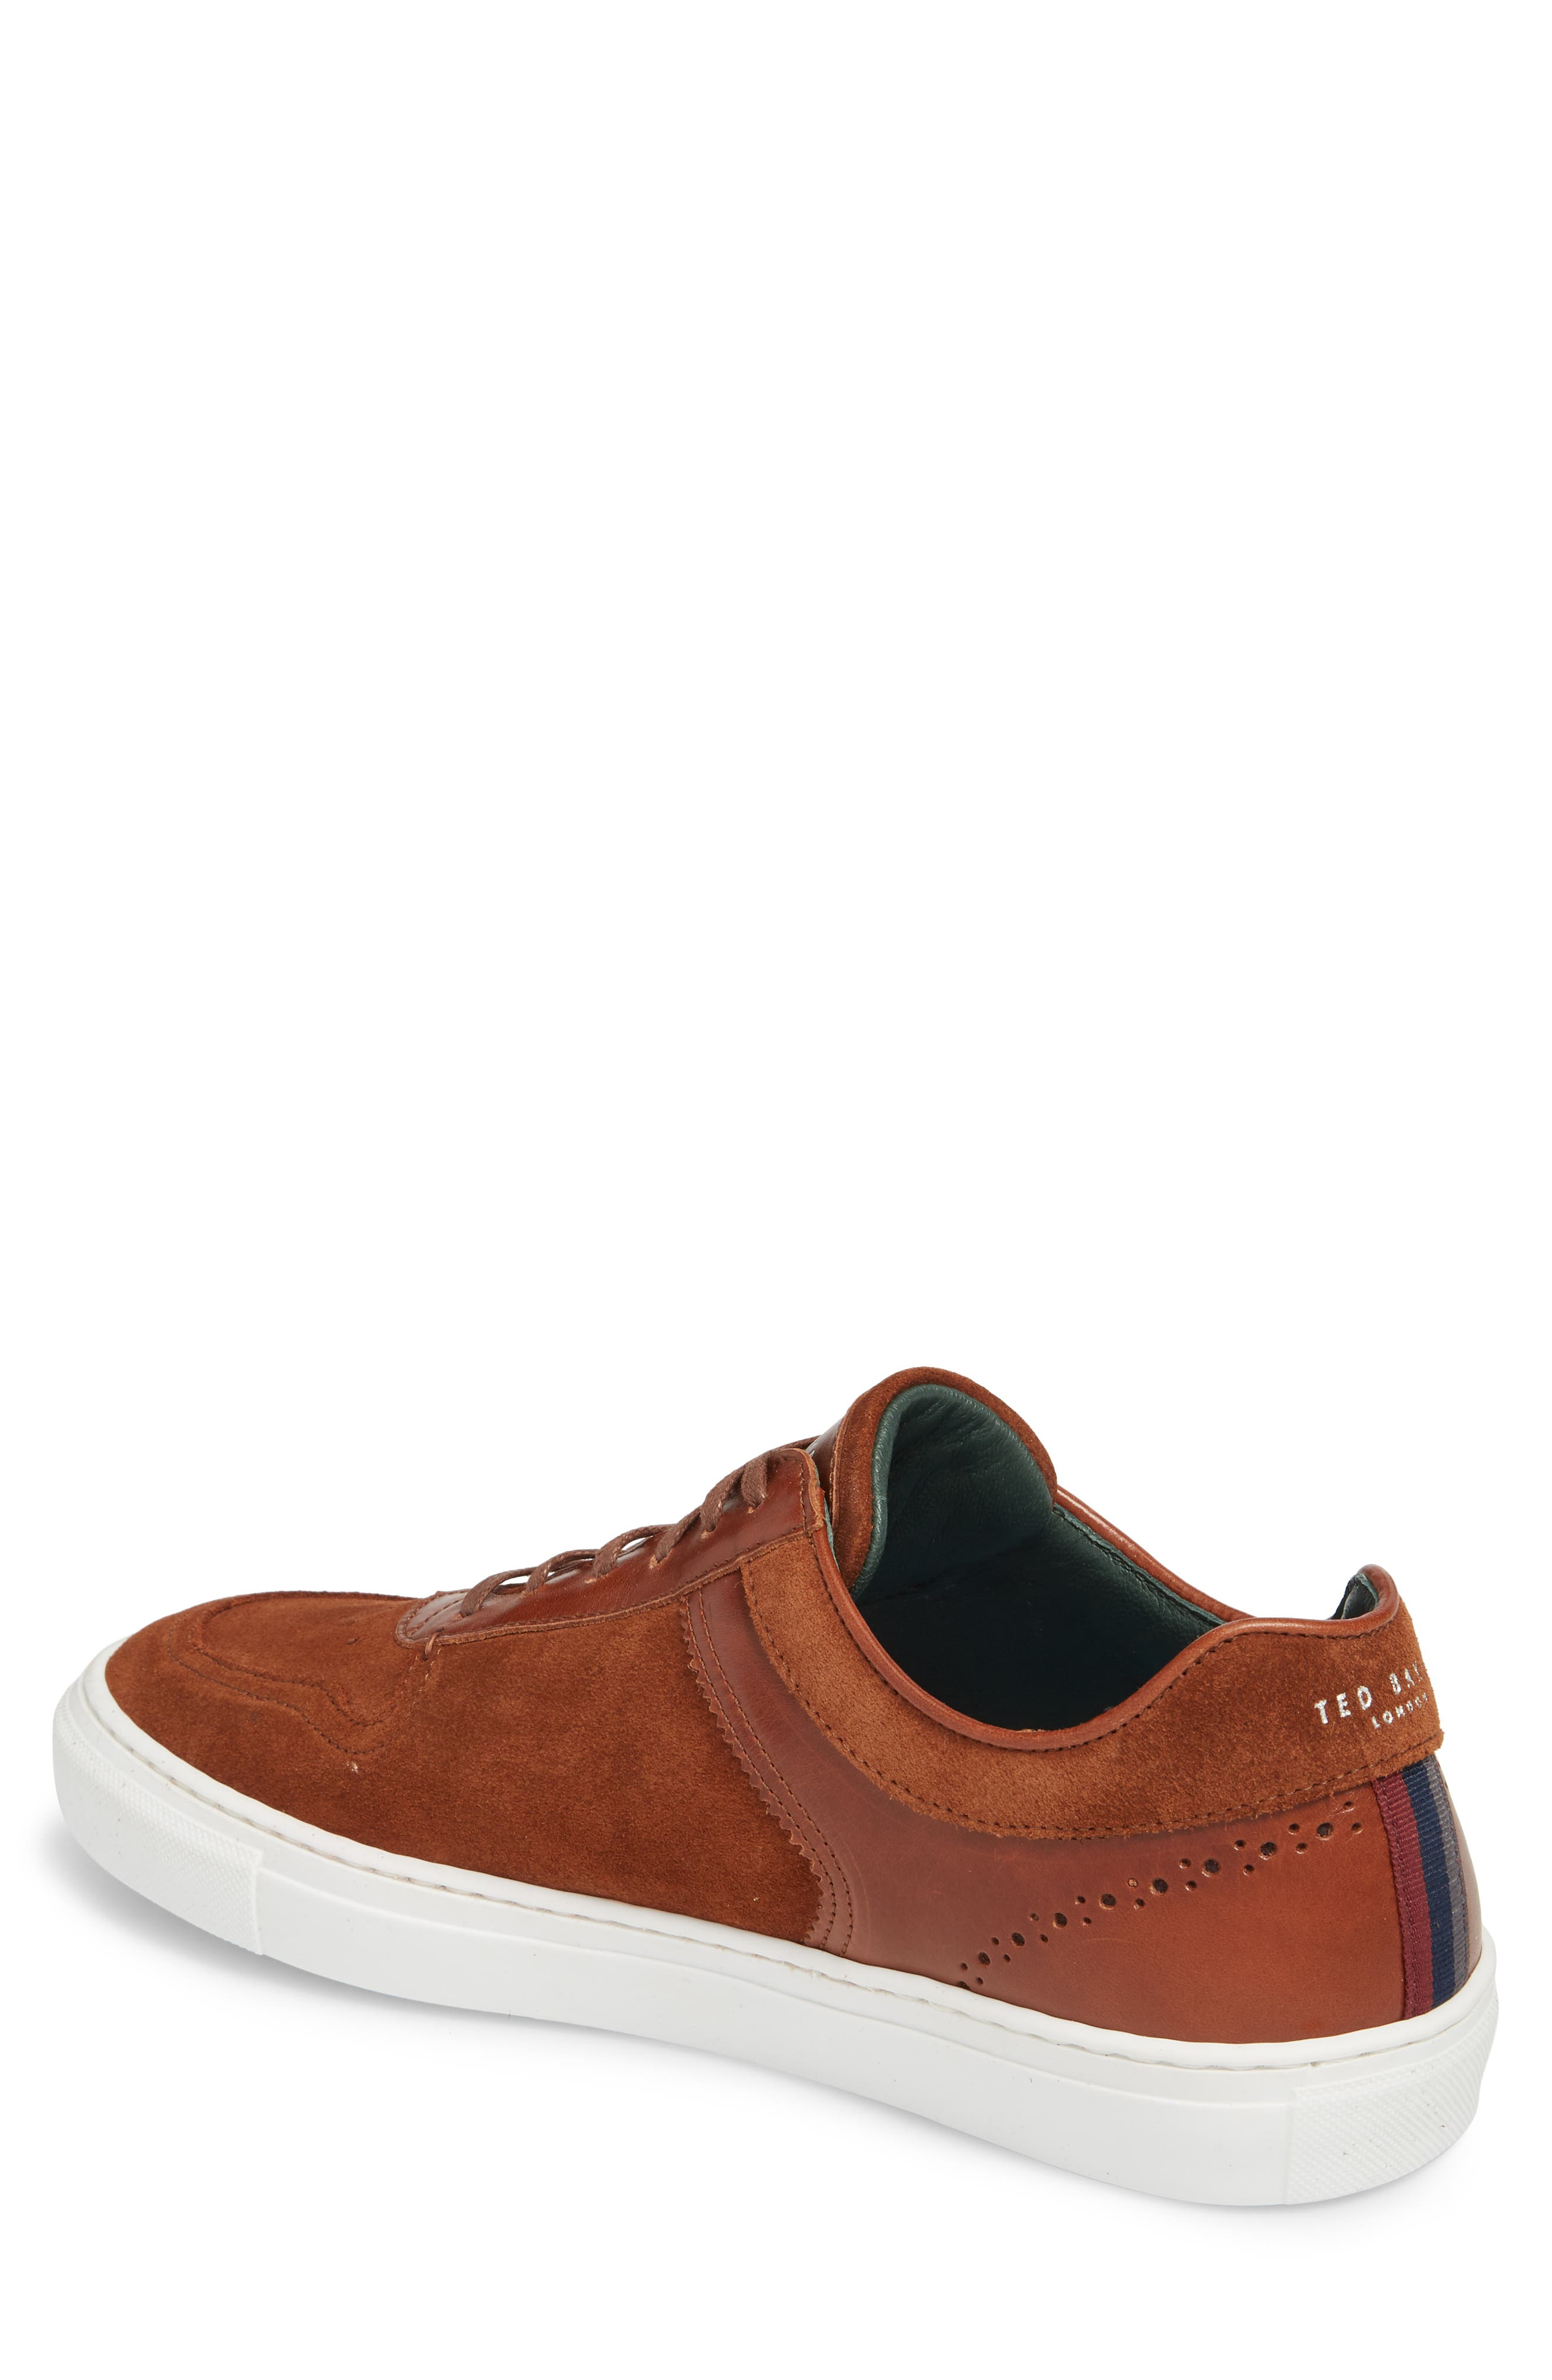 Burall Sneaker,                             Alternate thumbnail 2, color,                             Dark Tan Suede